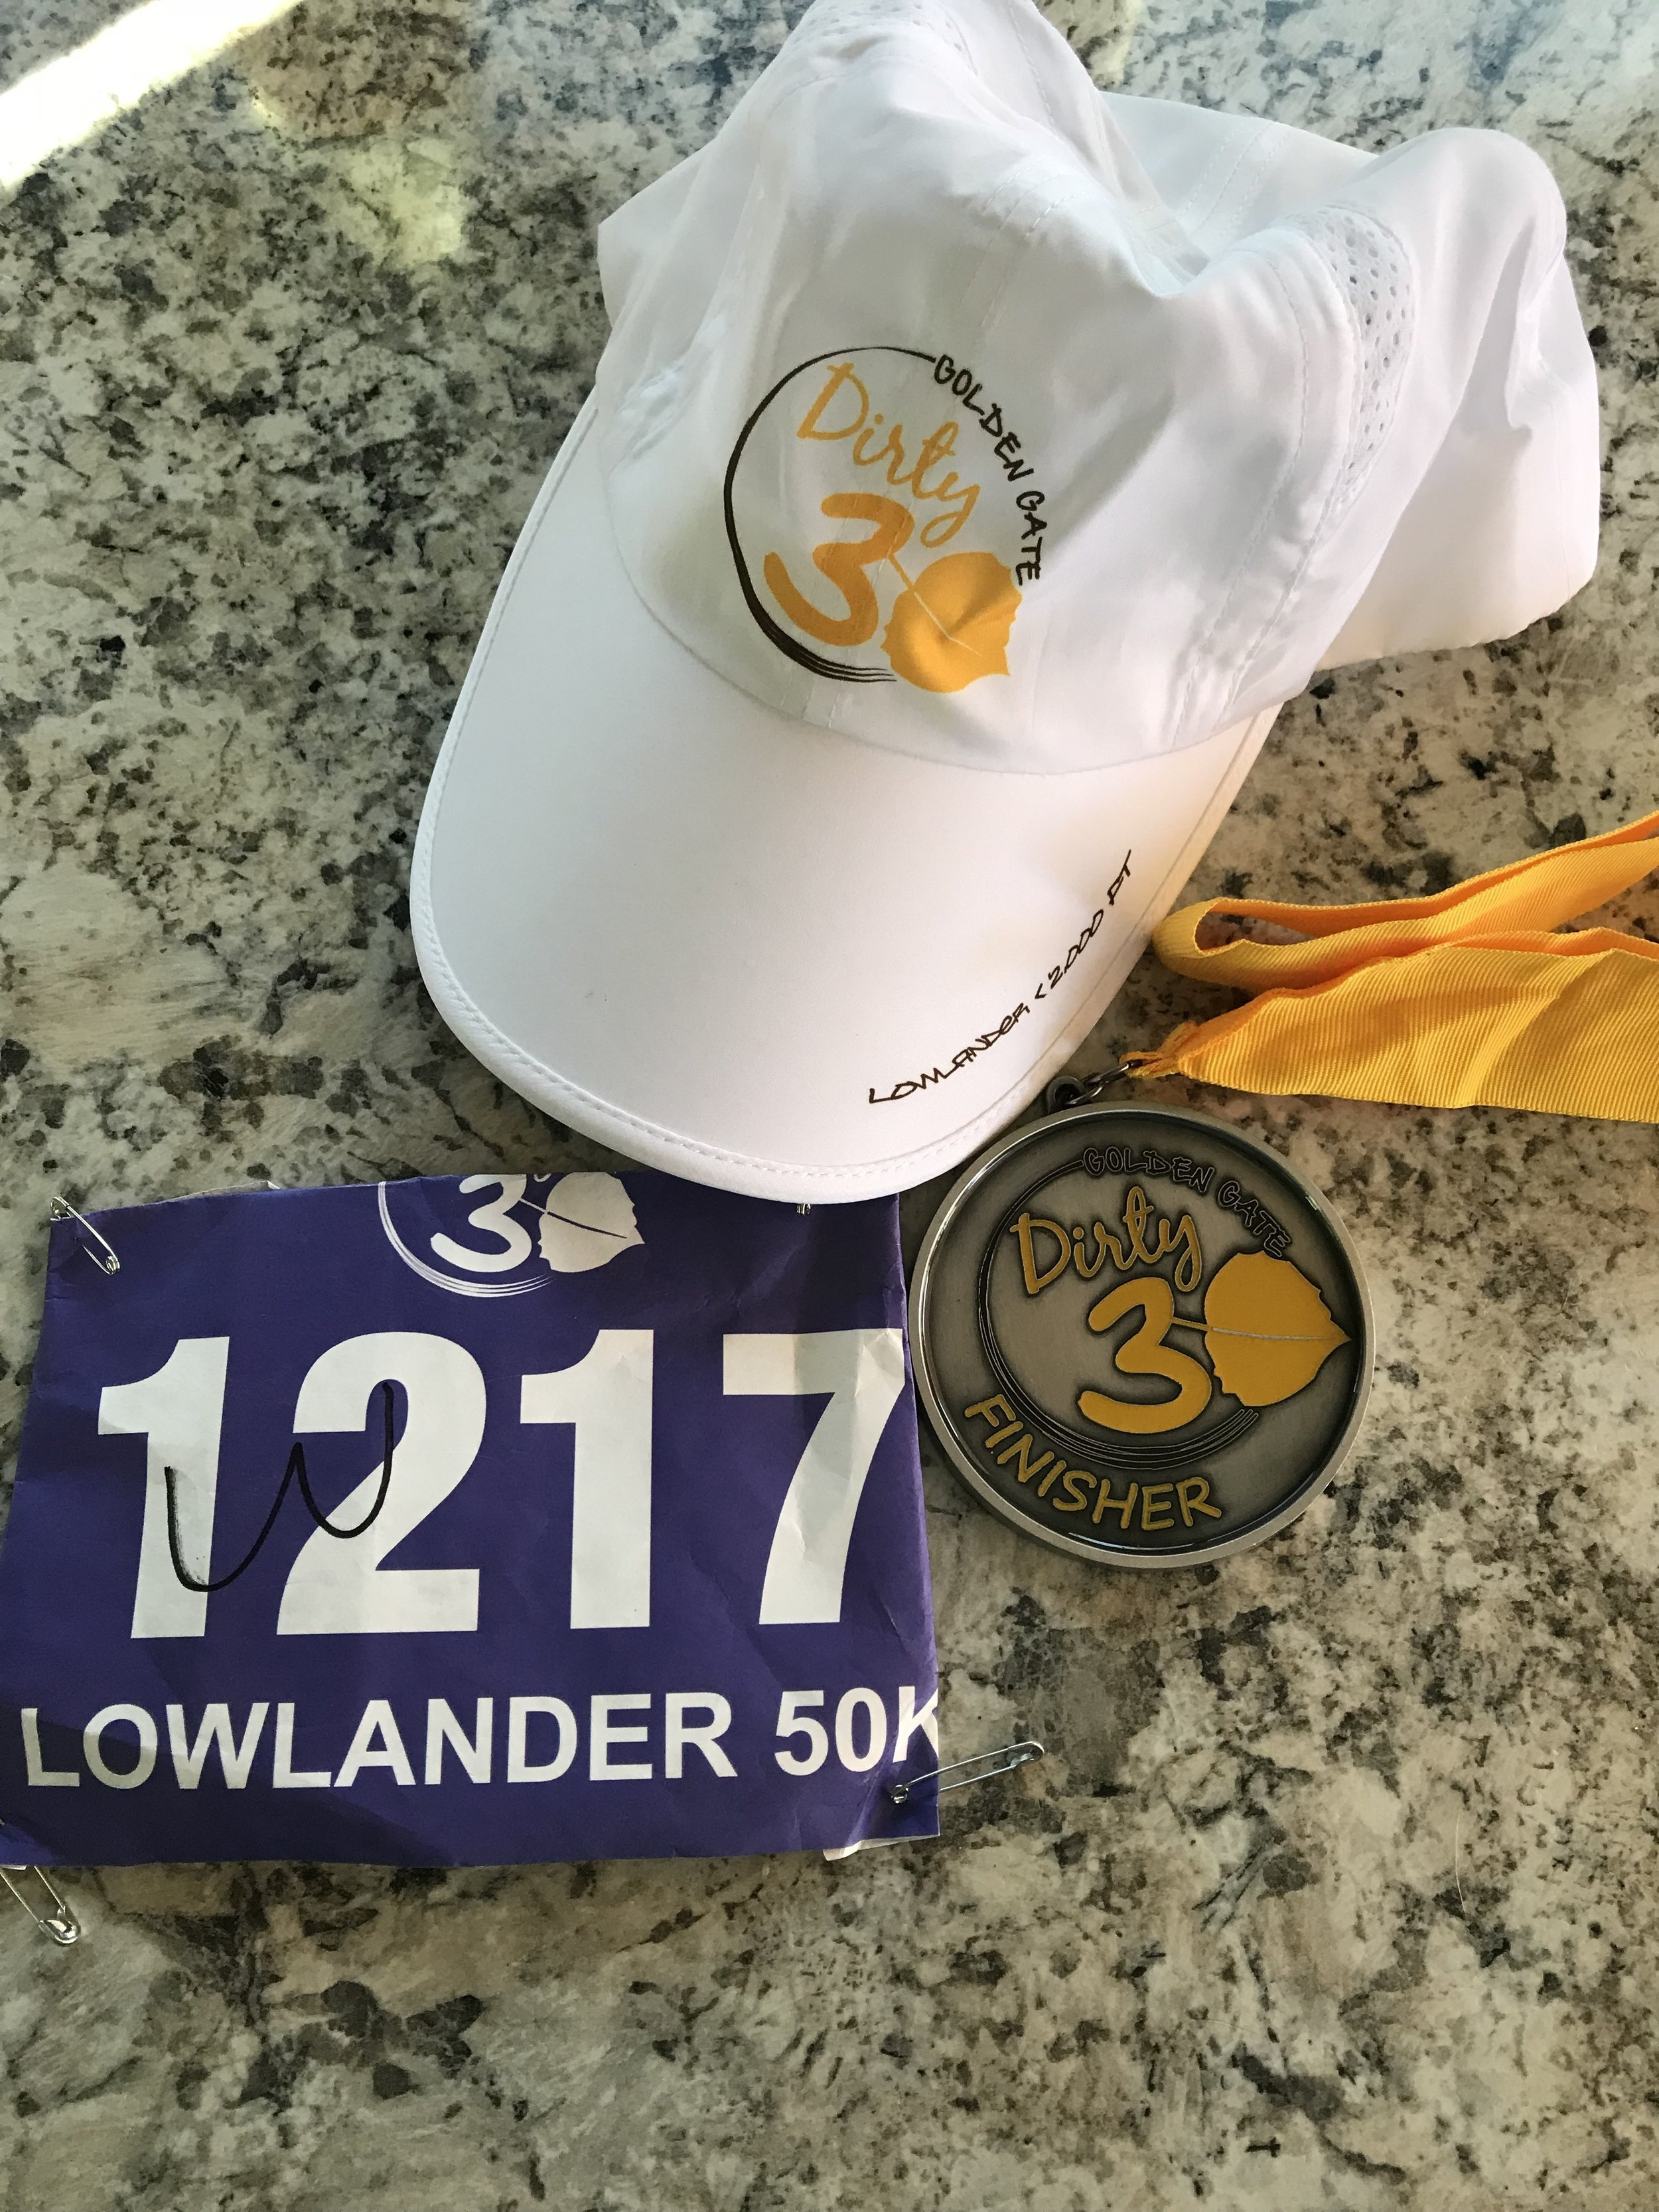 Finisher hat and medal.